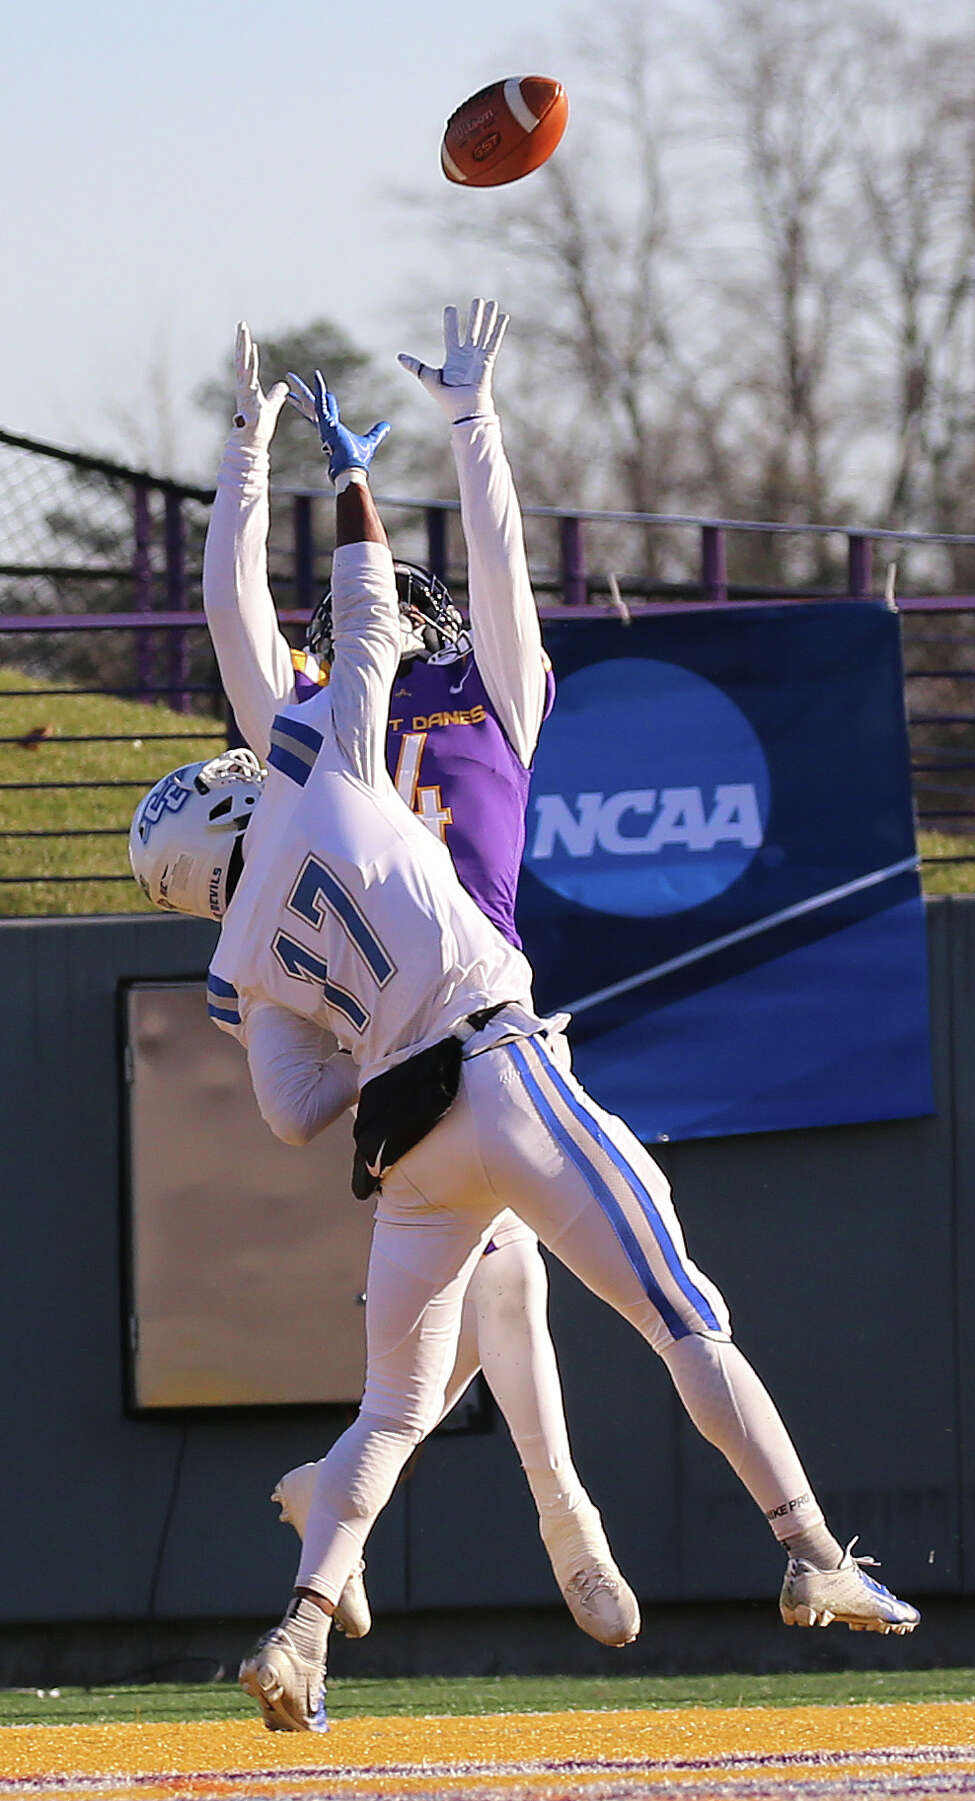 UAlbany receiver Juwan Green goes up to catch a touchdown pass in front of Central Connecticut defensive back Kendall Coles during the first round of the NCAA playoffs at UAlbany on Saturday, Nov. 30, 2019